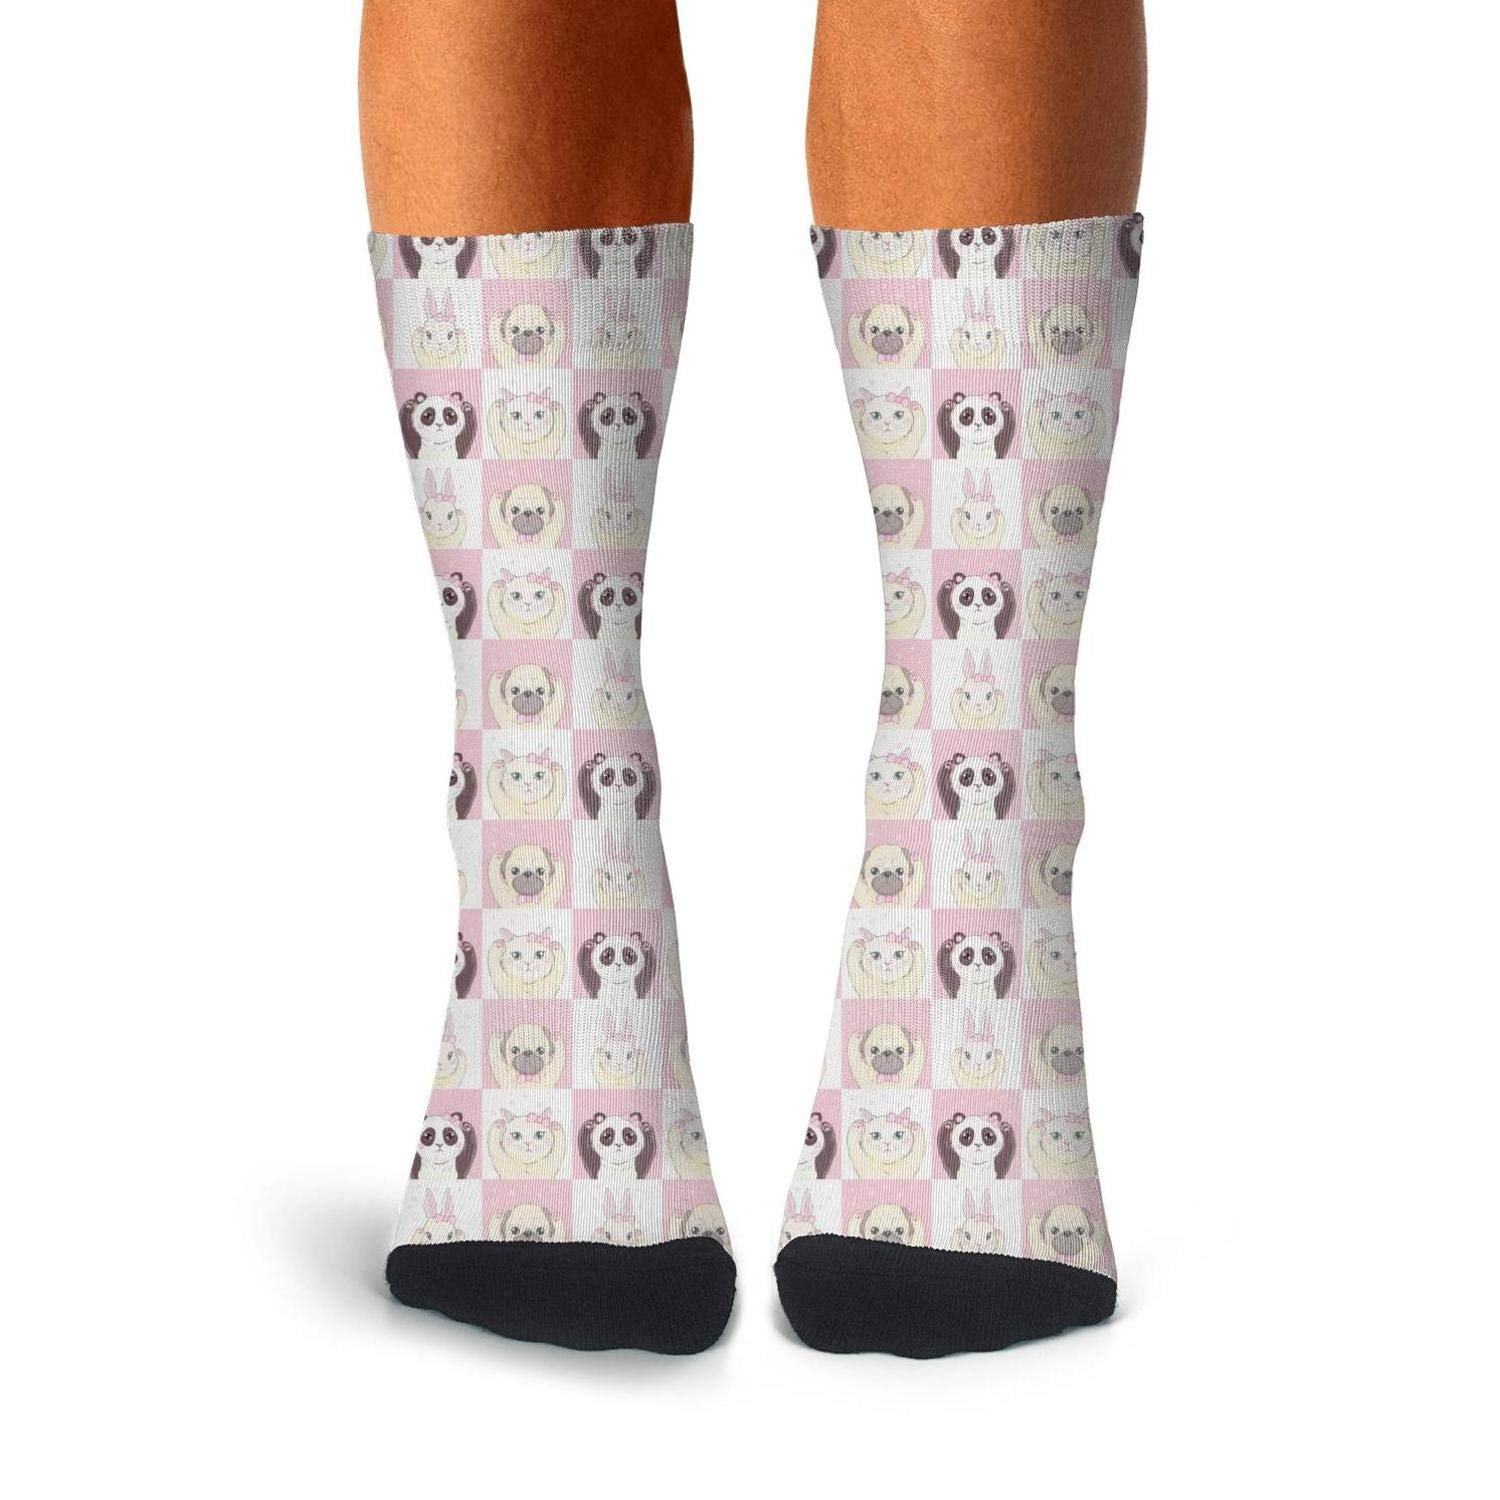 Mens All-season Sports Novelty Socks Cute Cat Face And Paw White Background Athletic Socks For Men